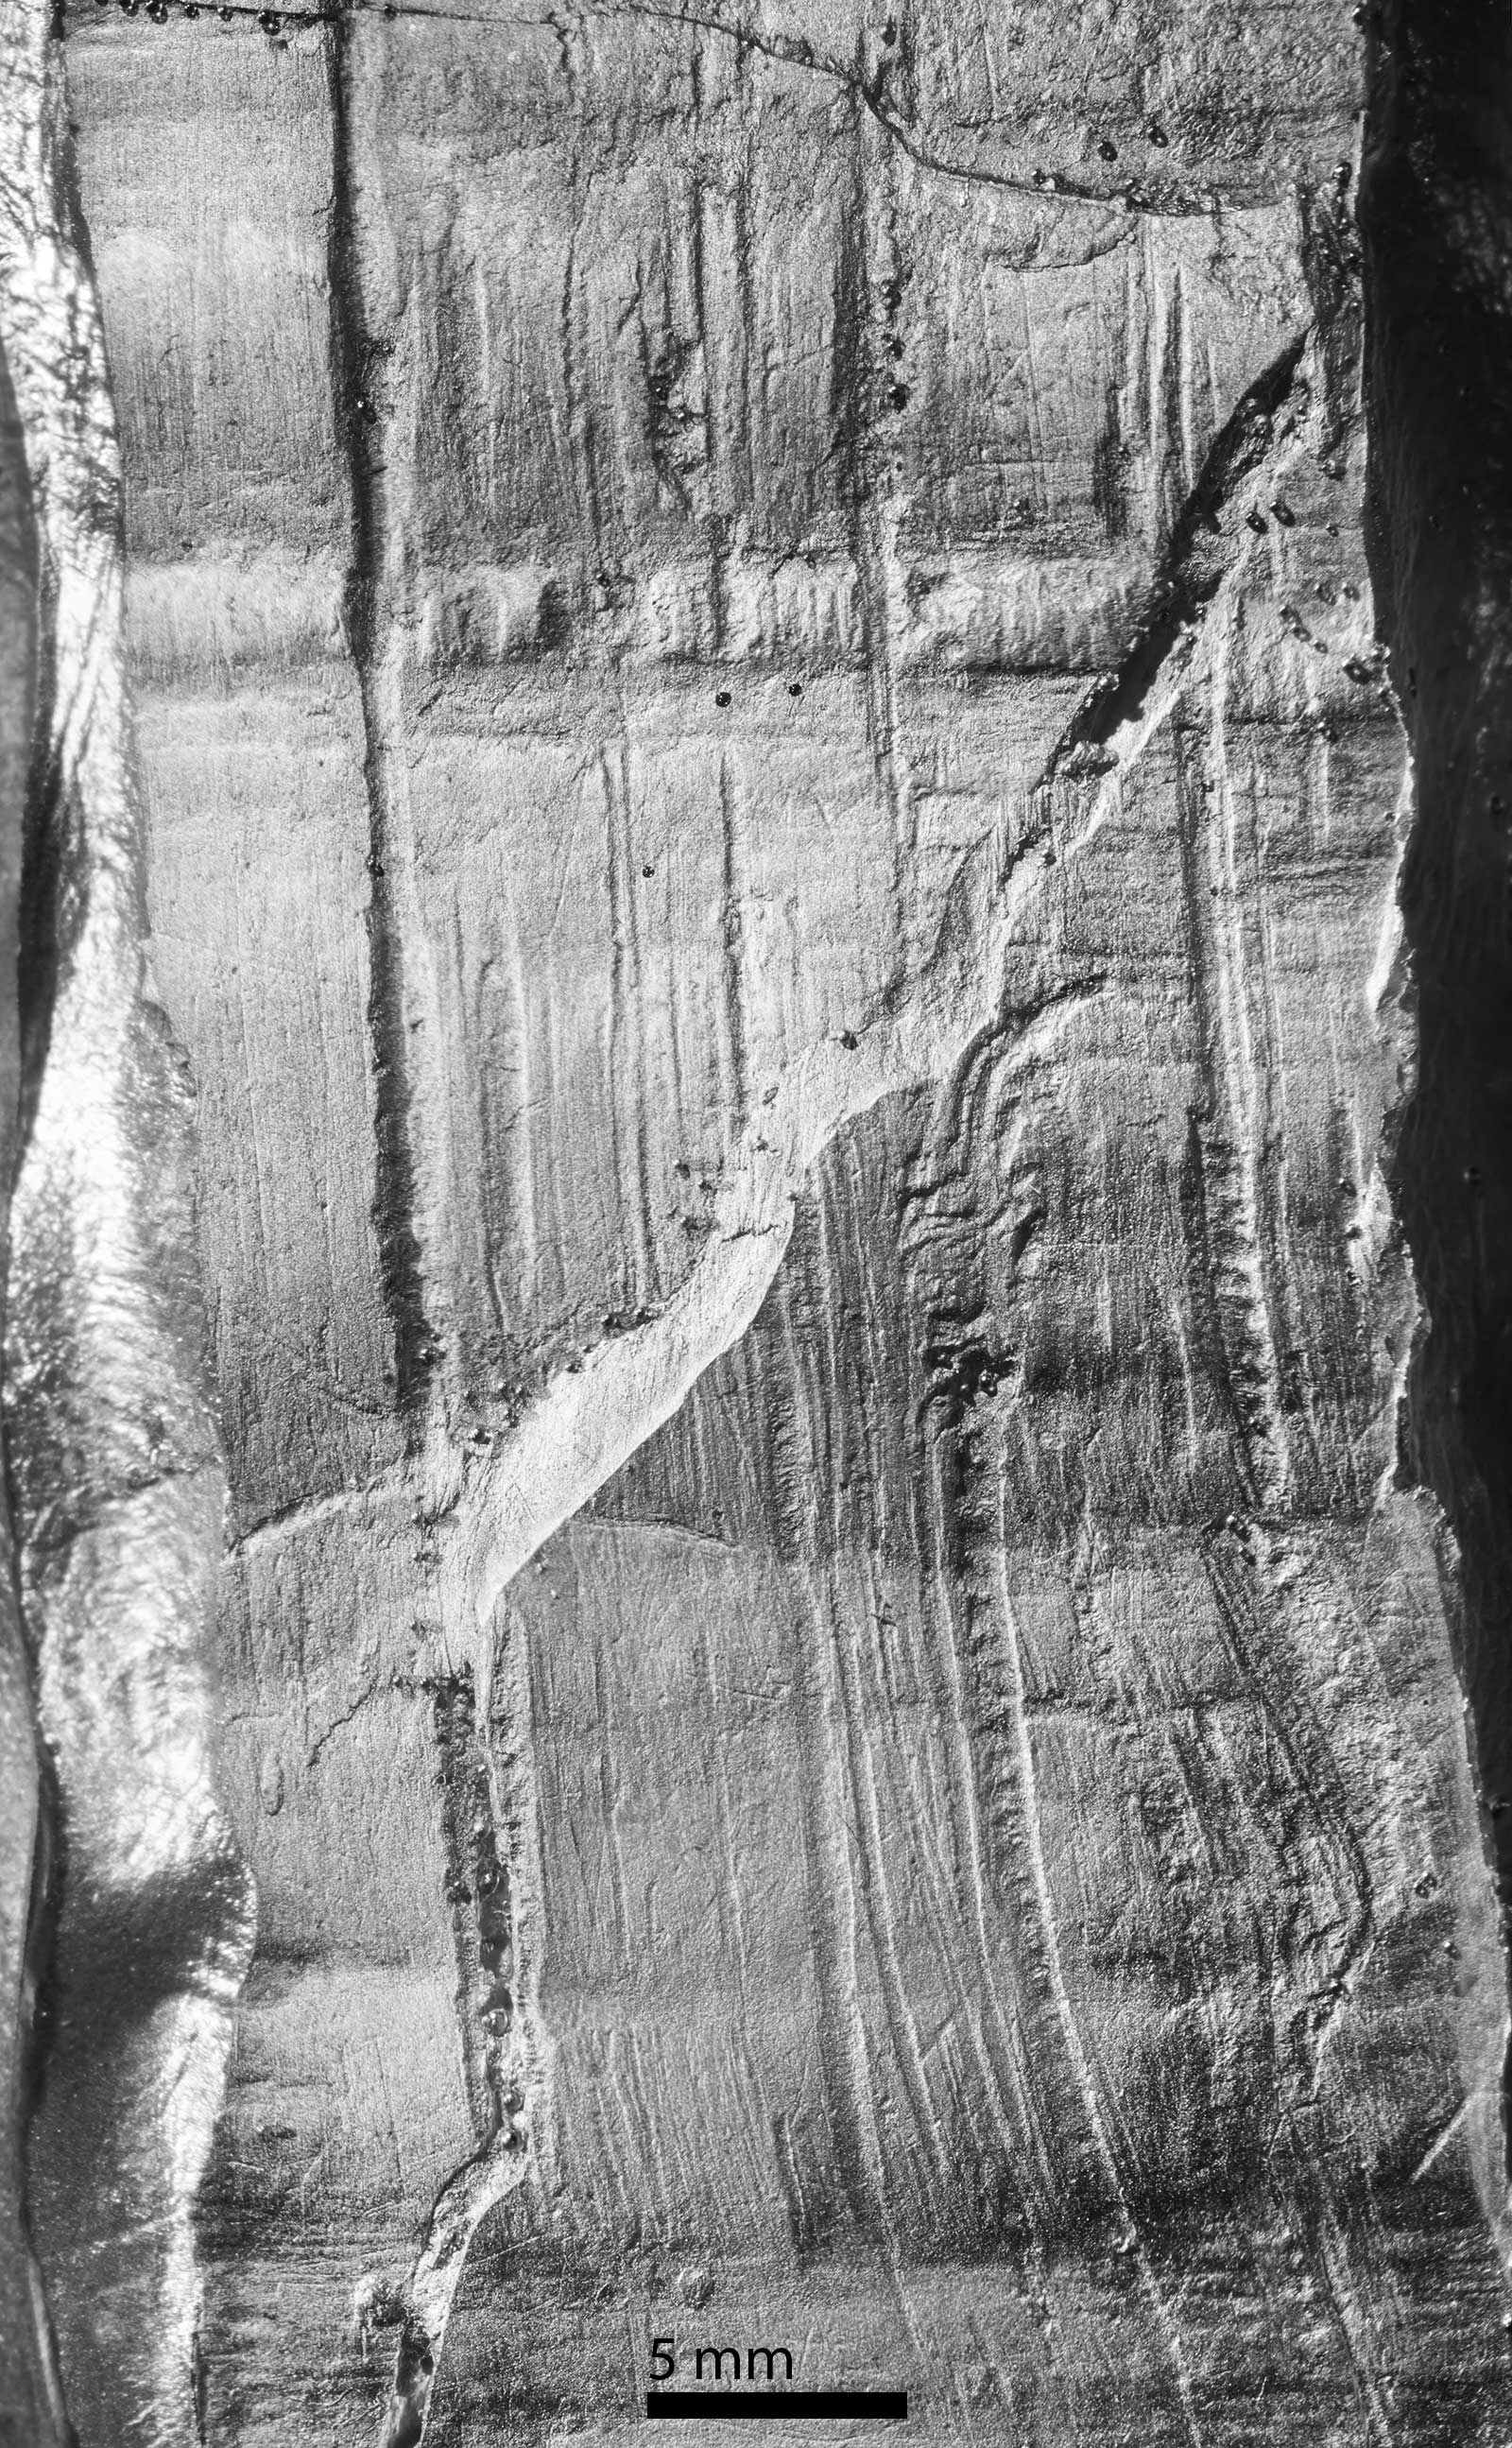 Closeup of an epoxy cast of transverse cut marks on the base of the Page-Ladson mastodon tusk. Diagonal feature is a fracture through the outer layer. Image credit: Daniel C. Fisher, University of Michigan Museum of Paleontology